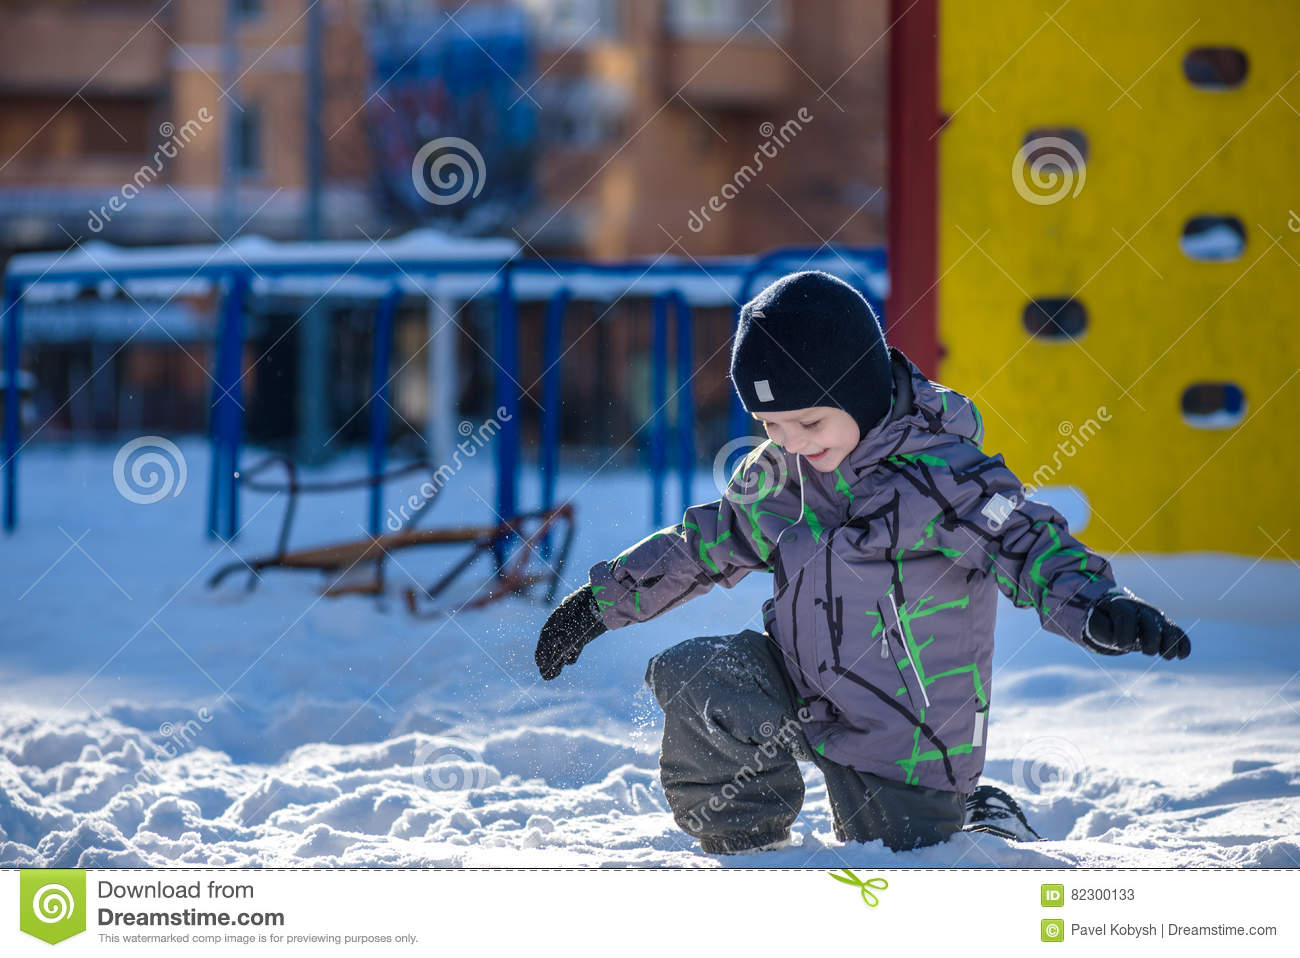 6575cca4d43 boy-jumping-snow-happy-kid-walking-outdoors-winter -city-child-smiling-having-fun-82300133.jpg